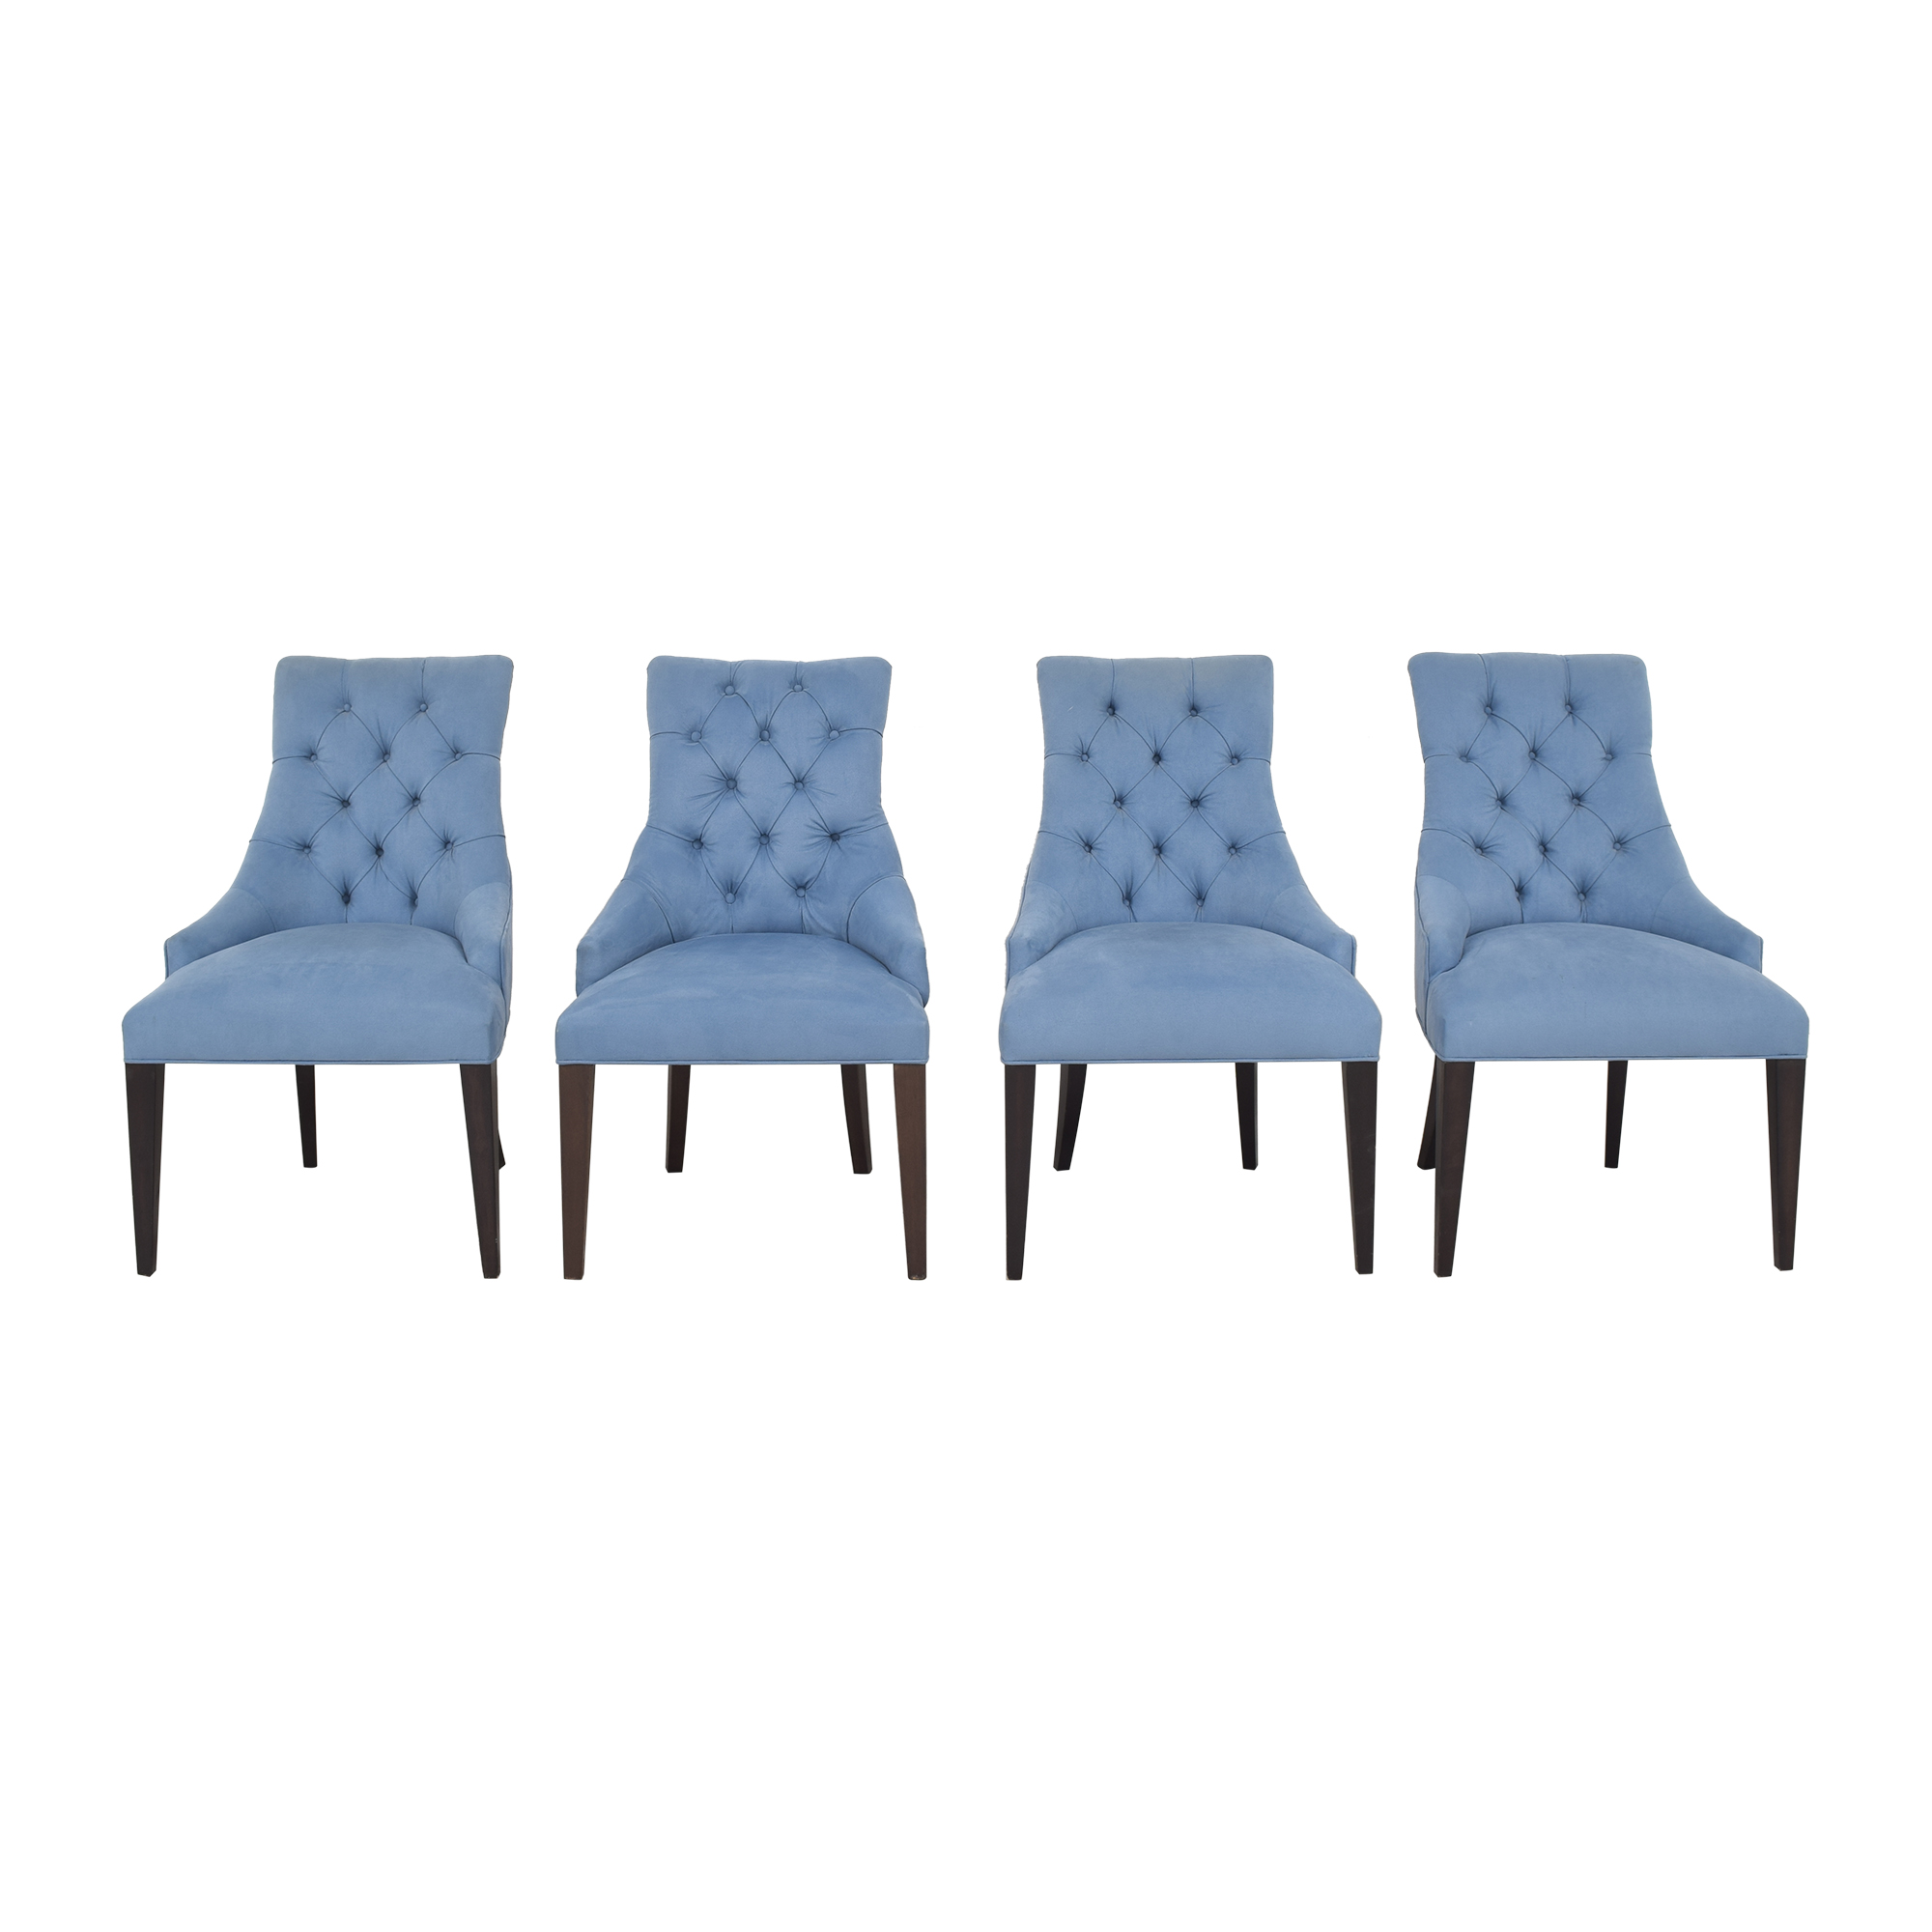 Tufted Back Dining Chairs price